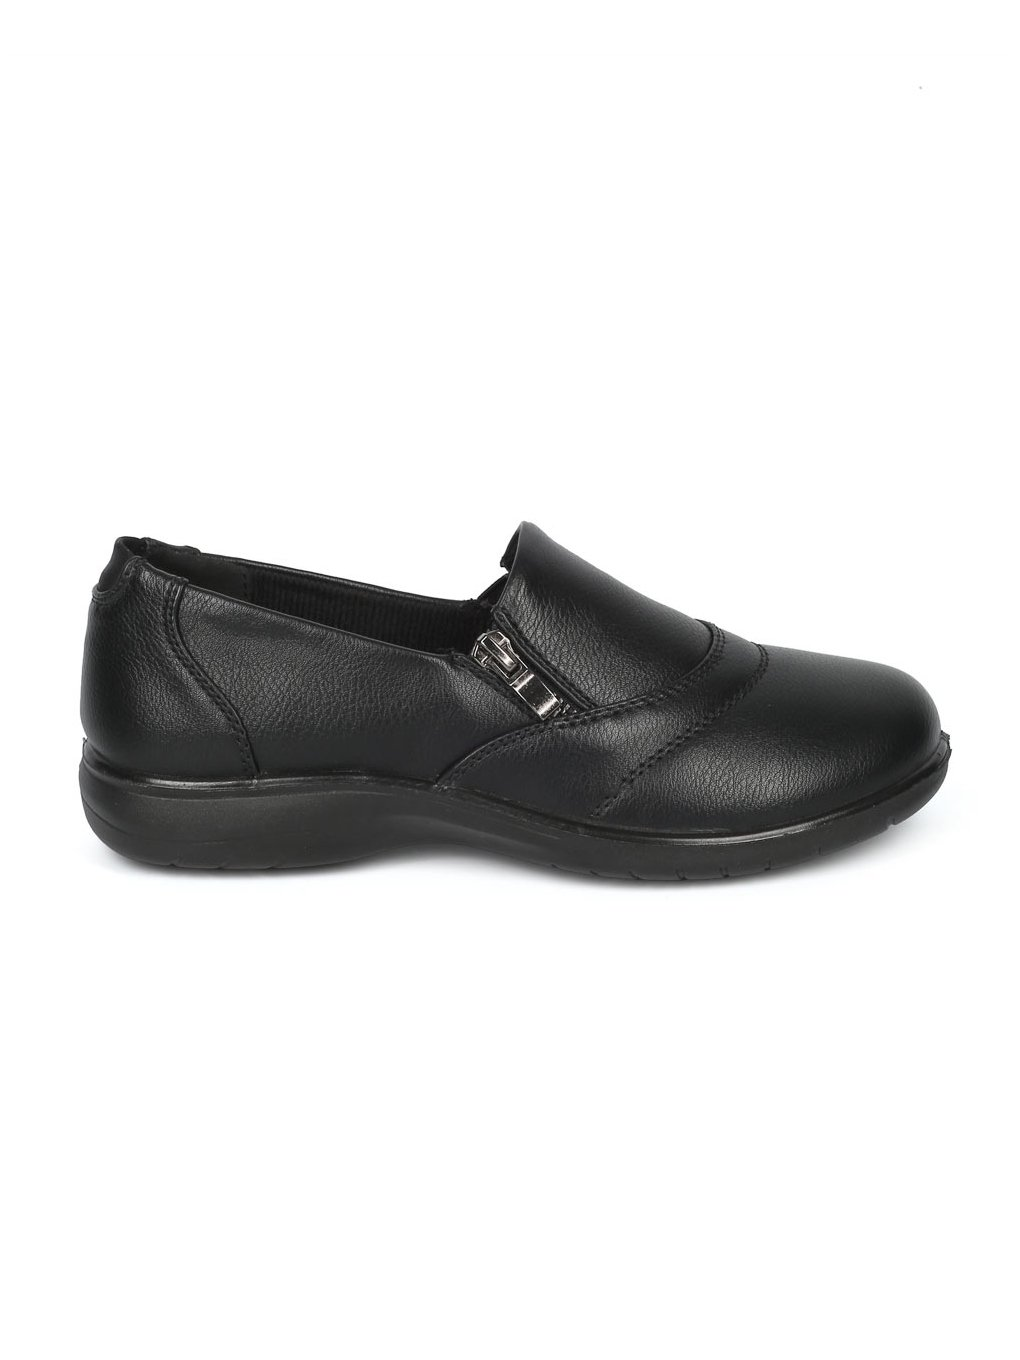 Alrisco Women Leatherette Round Toe Elevated Heel Work Loafer HD92 - Black Leatherette (Size: 7.0) by Alrisco (Image #2)